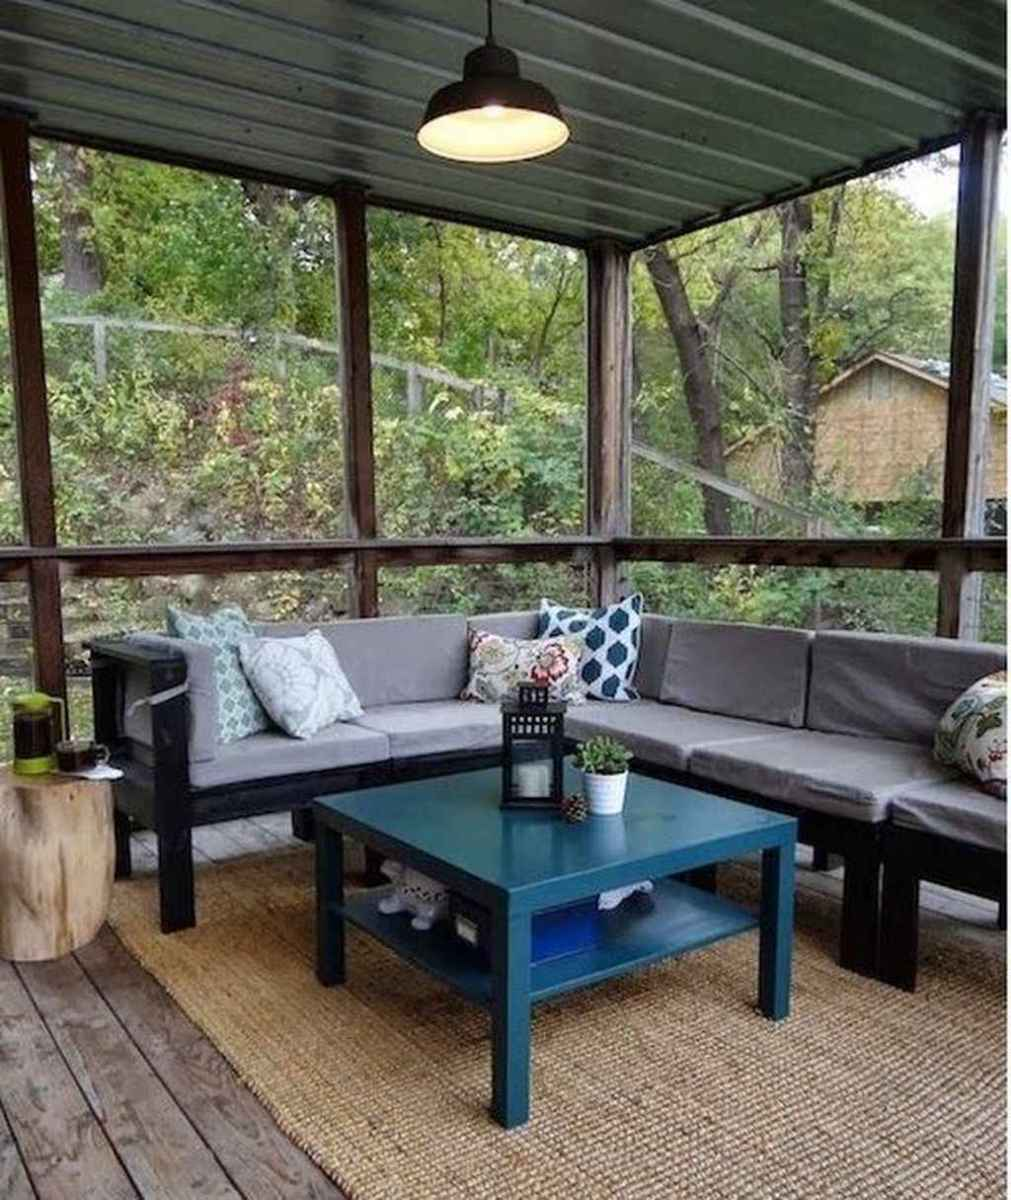 60 Gorgeous Farmhouse Screened In Porch Design Ideas for Relaxing